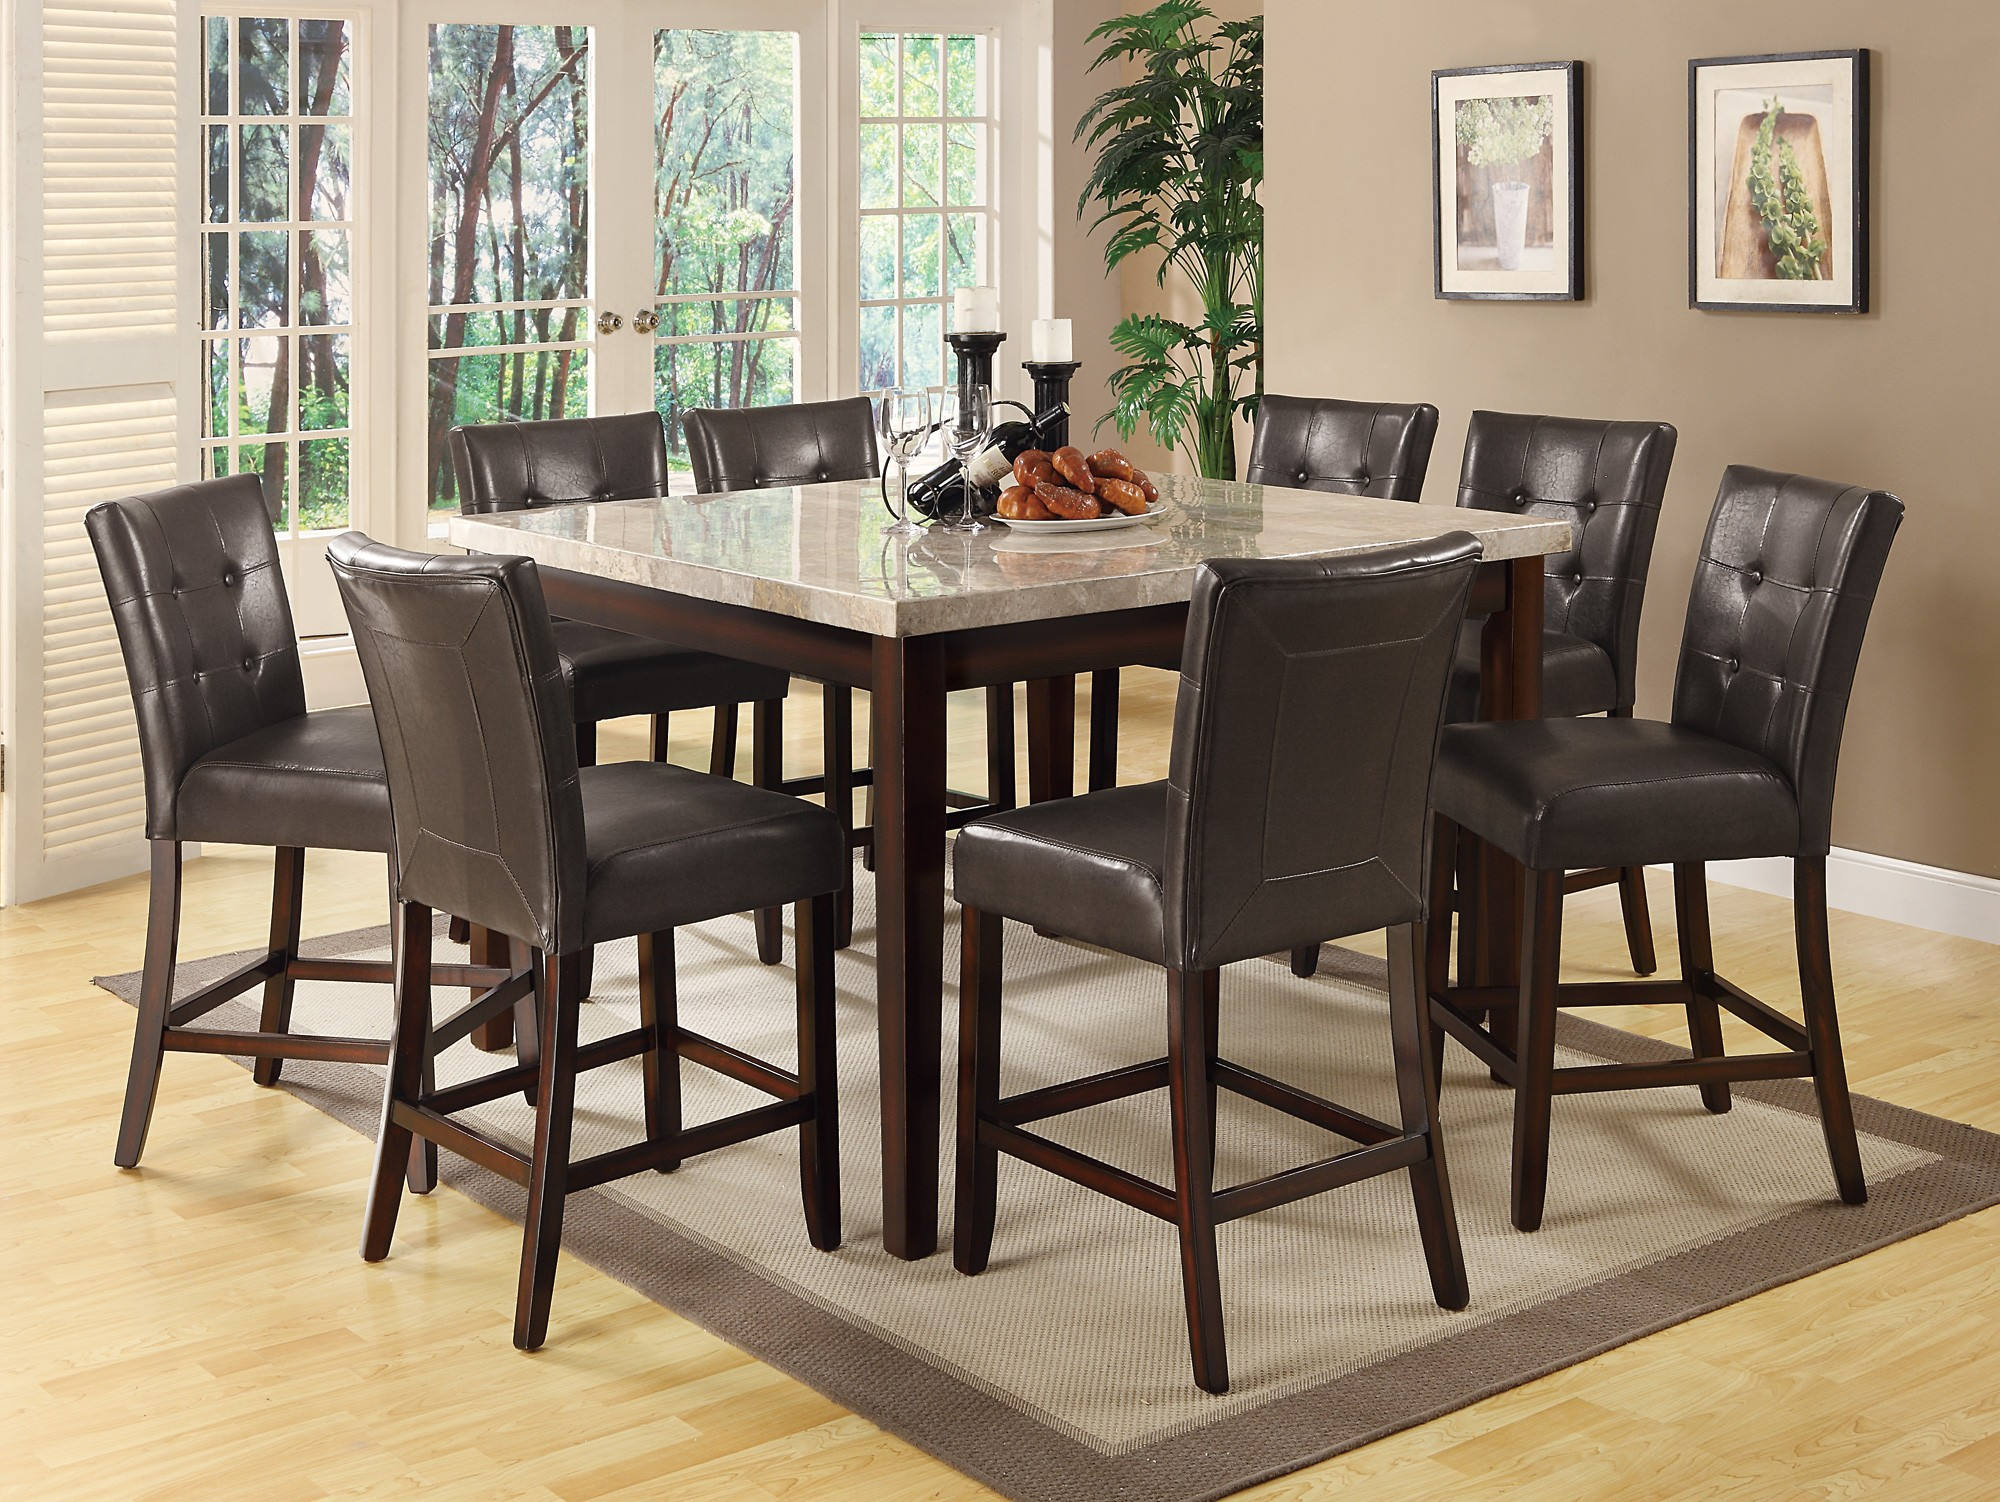 counter height dining room sets milton cappuccino counter height dining room set from coaster 103778 coleman furniture 5151